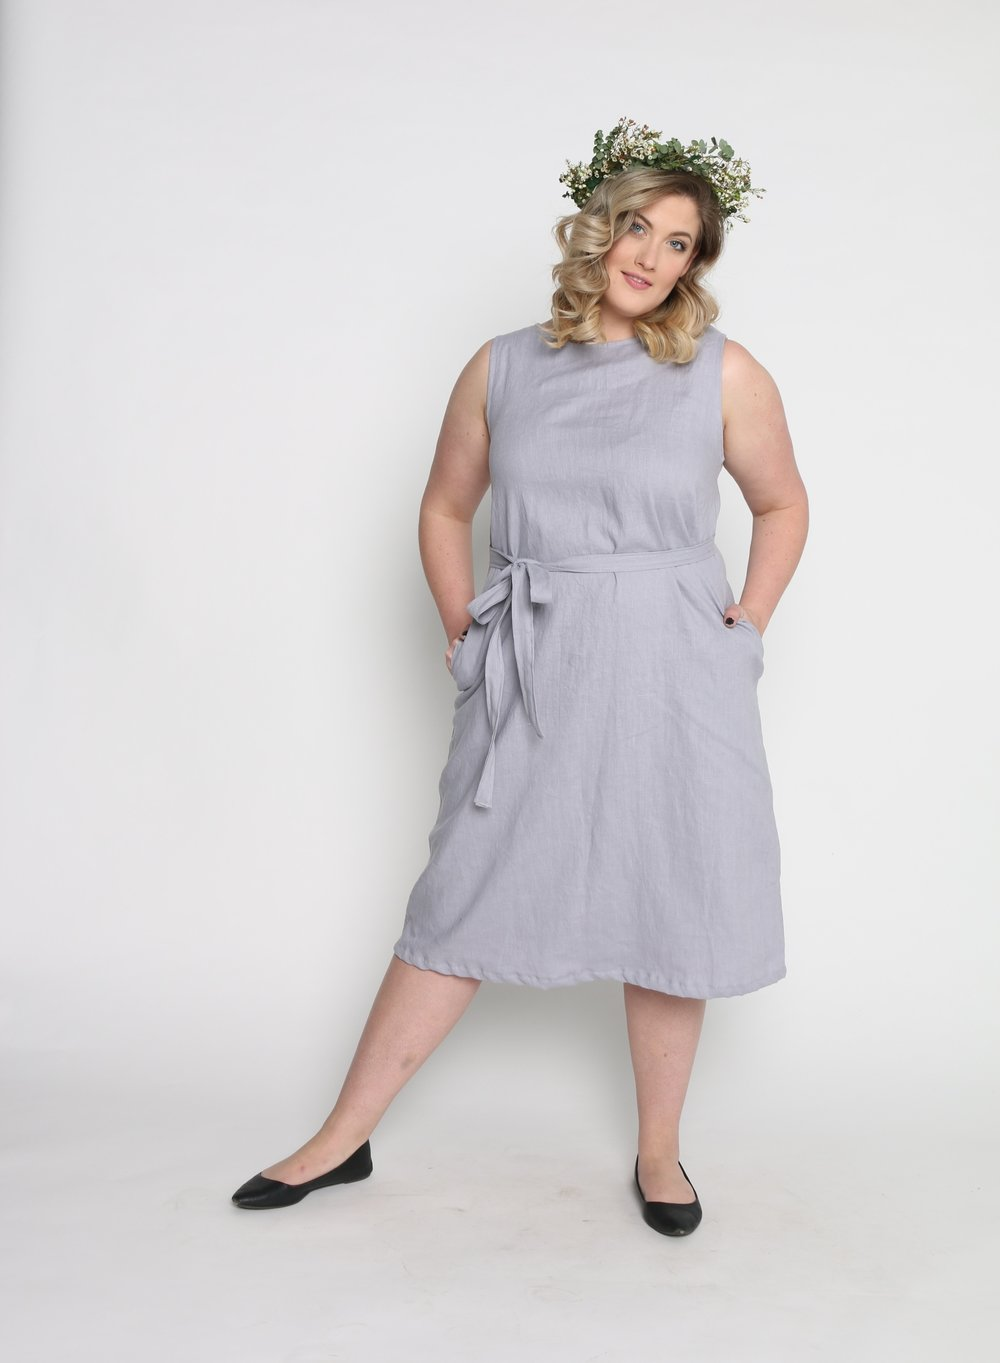 Emily is wearing size XL in Thistle.